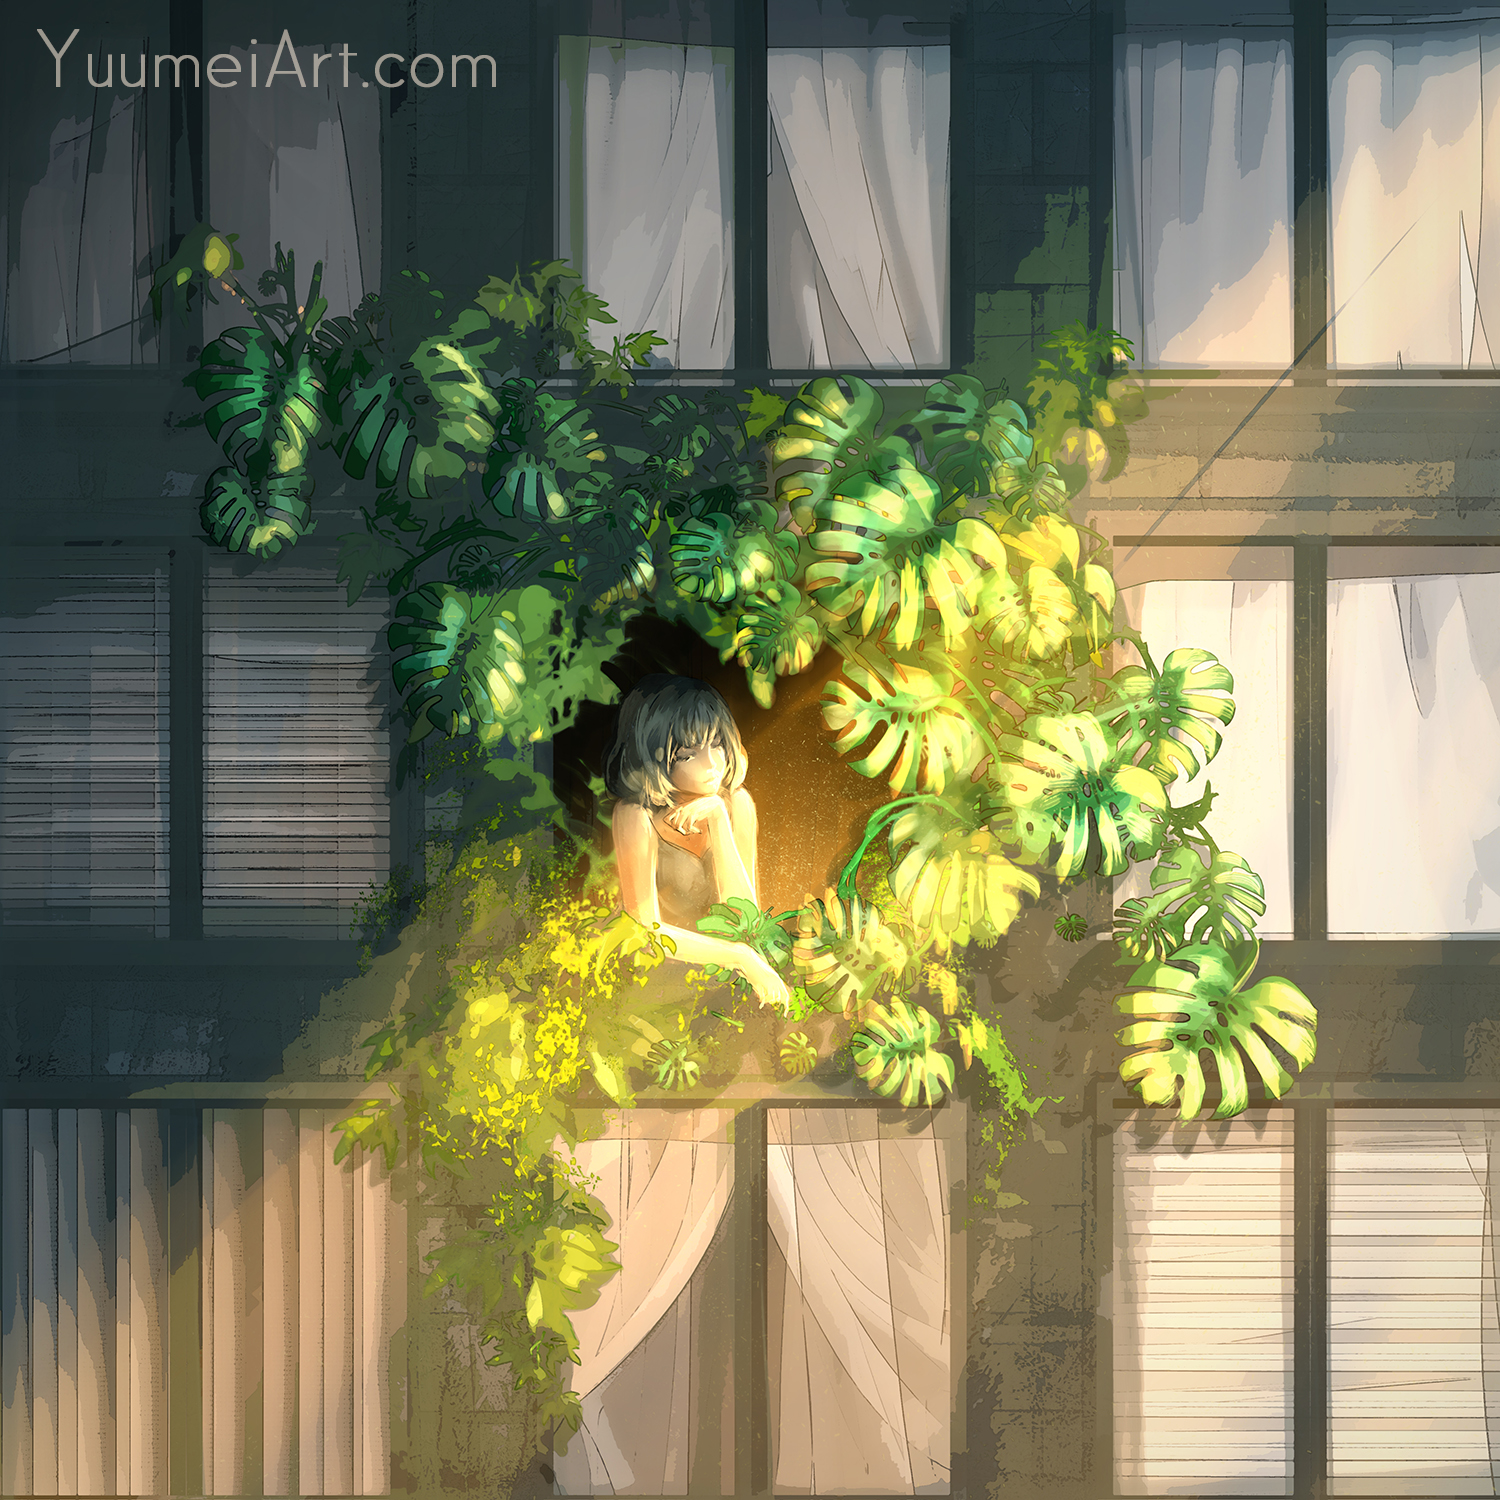 Lovely Sunday by yuumei